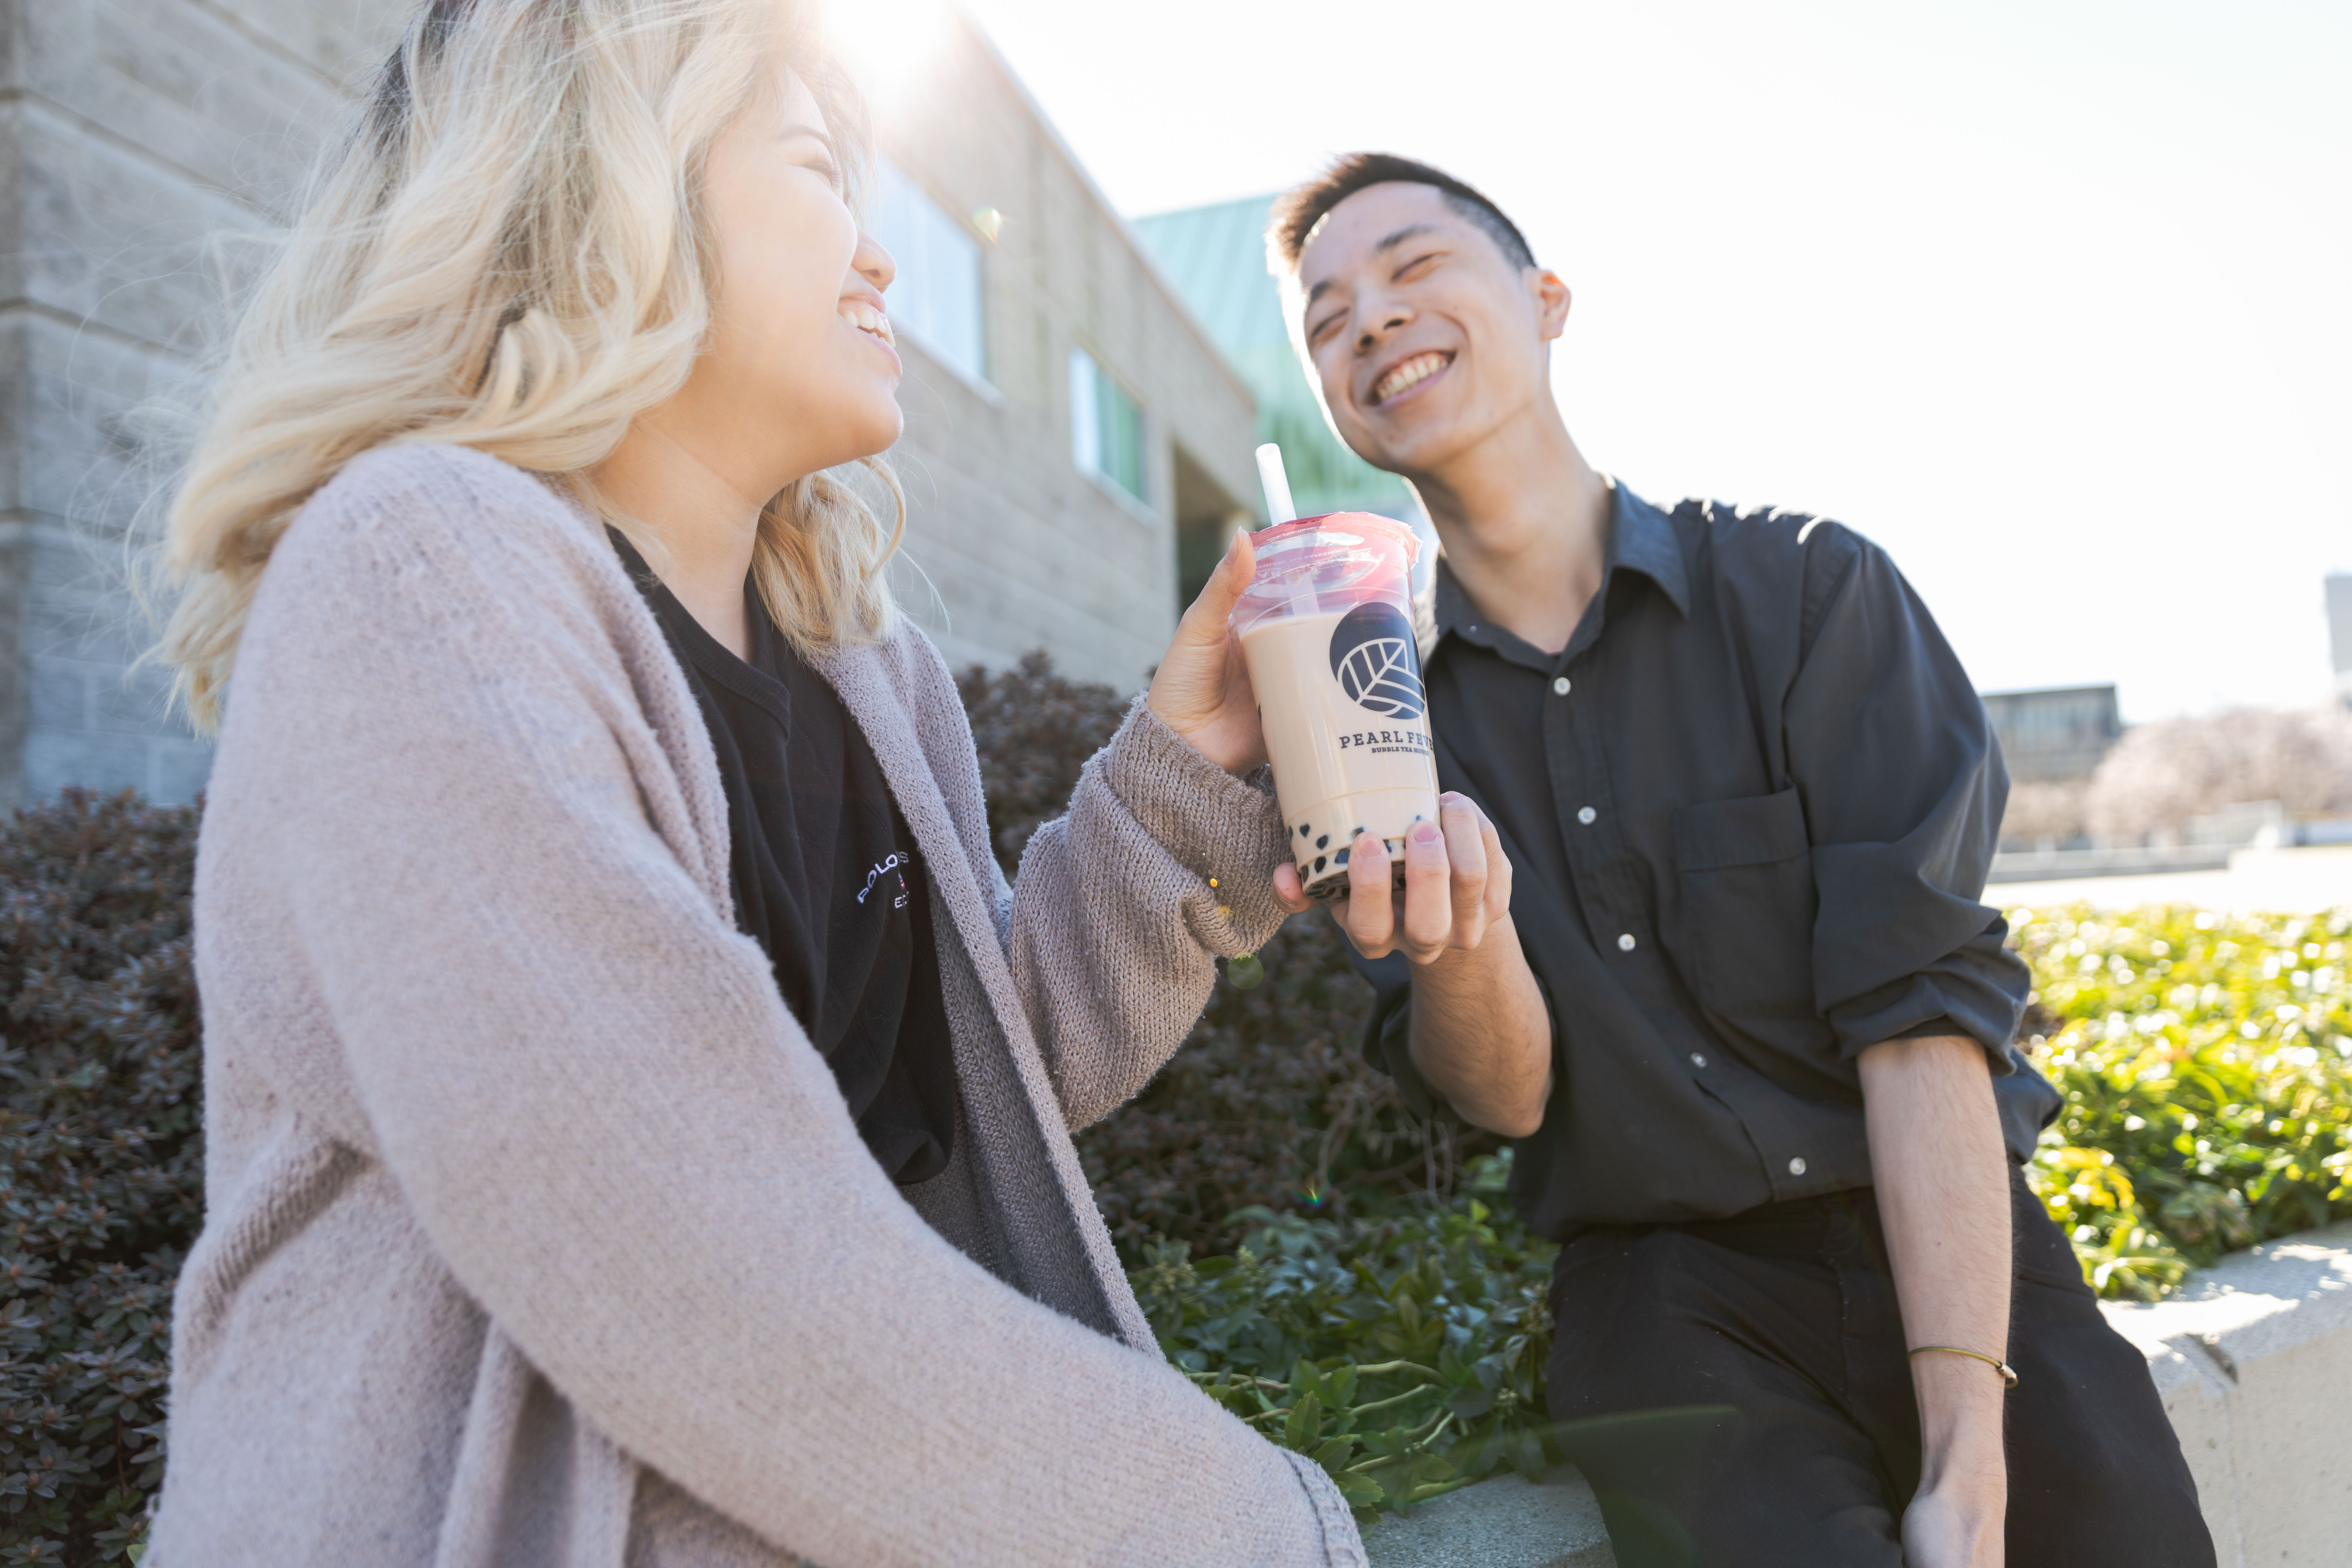 Sara and Shawn holding bubble tea